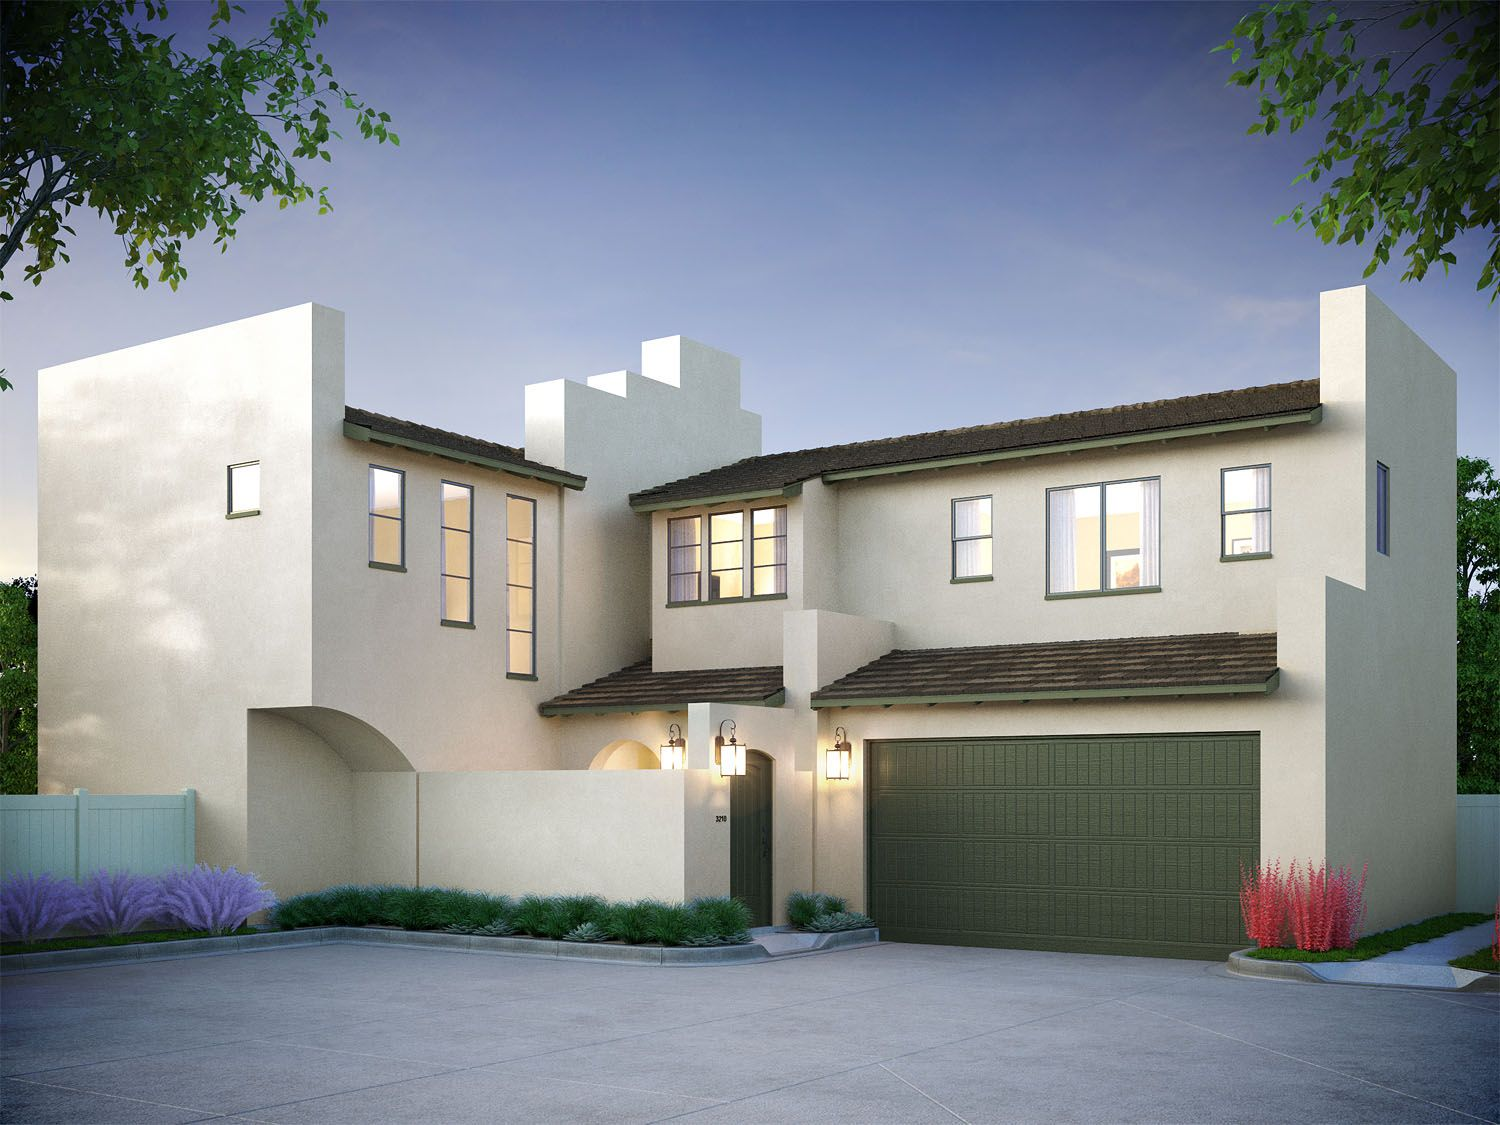 Single Family for Sale at Irving House - Residence 3 2007 North Orange-Olive Road Orange, California 92865 United States